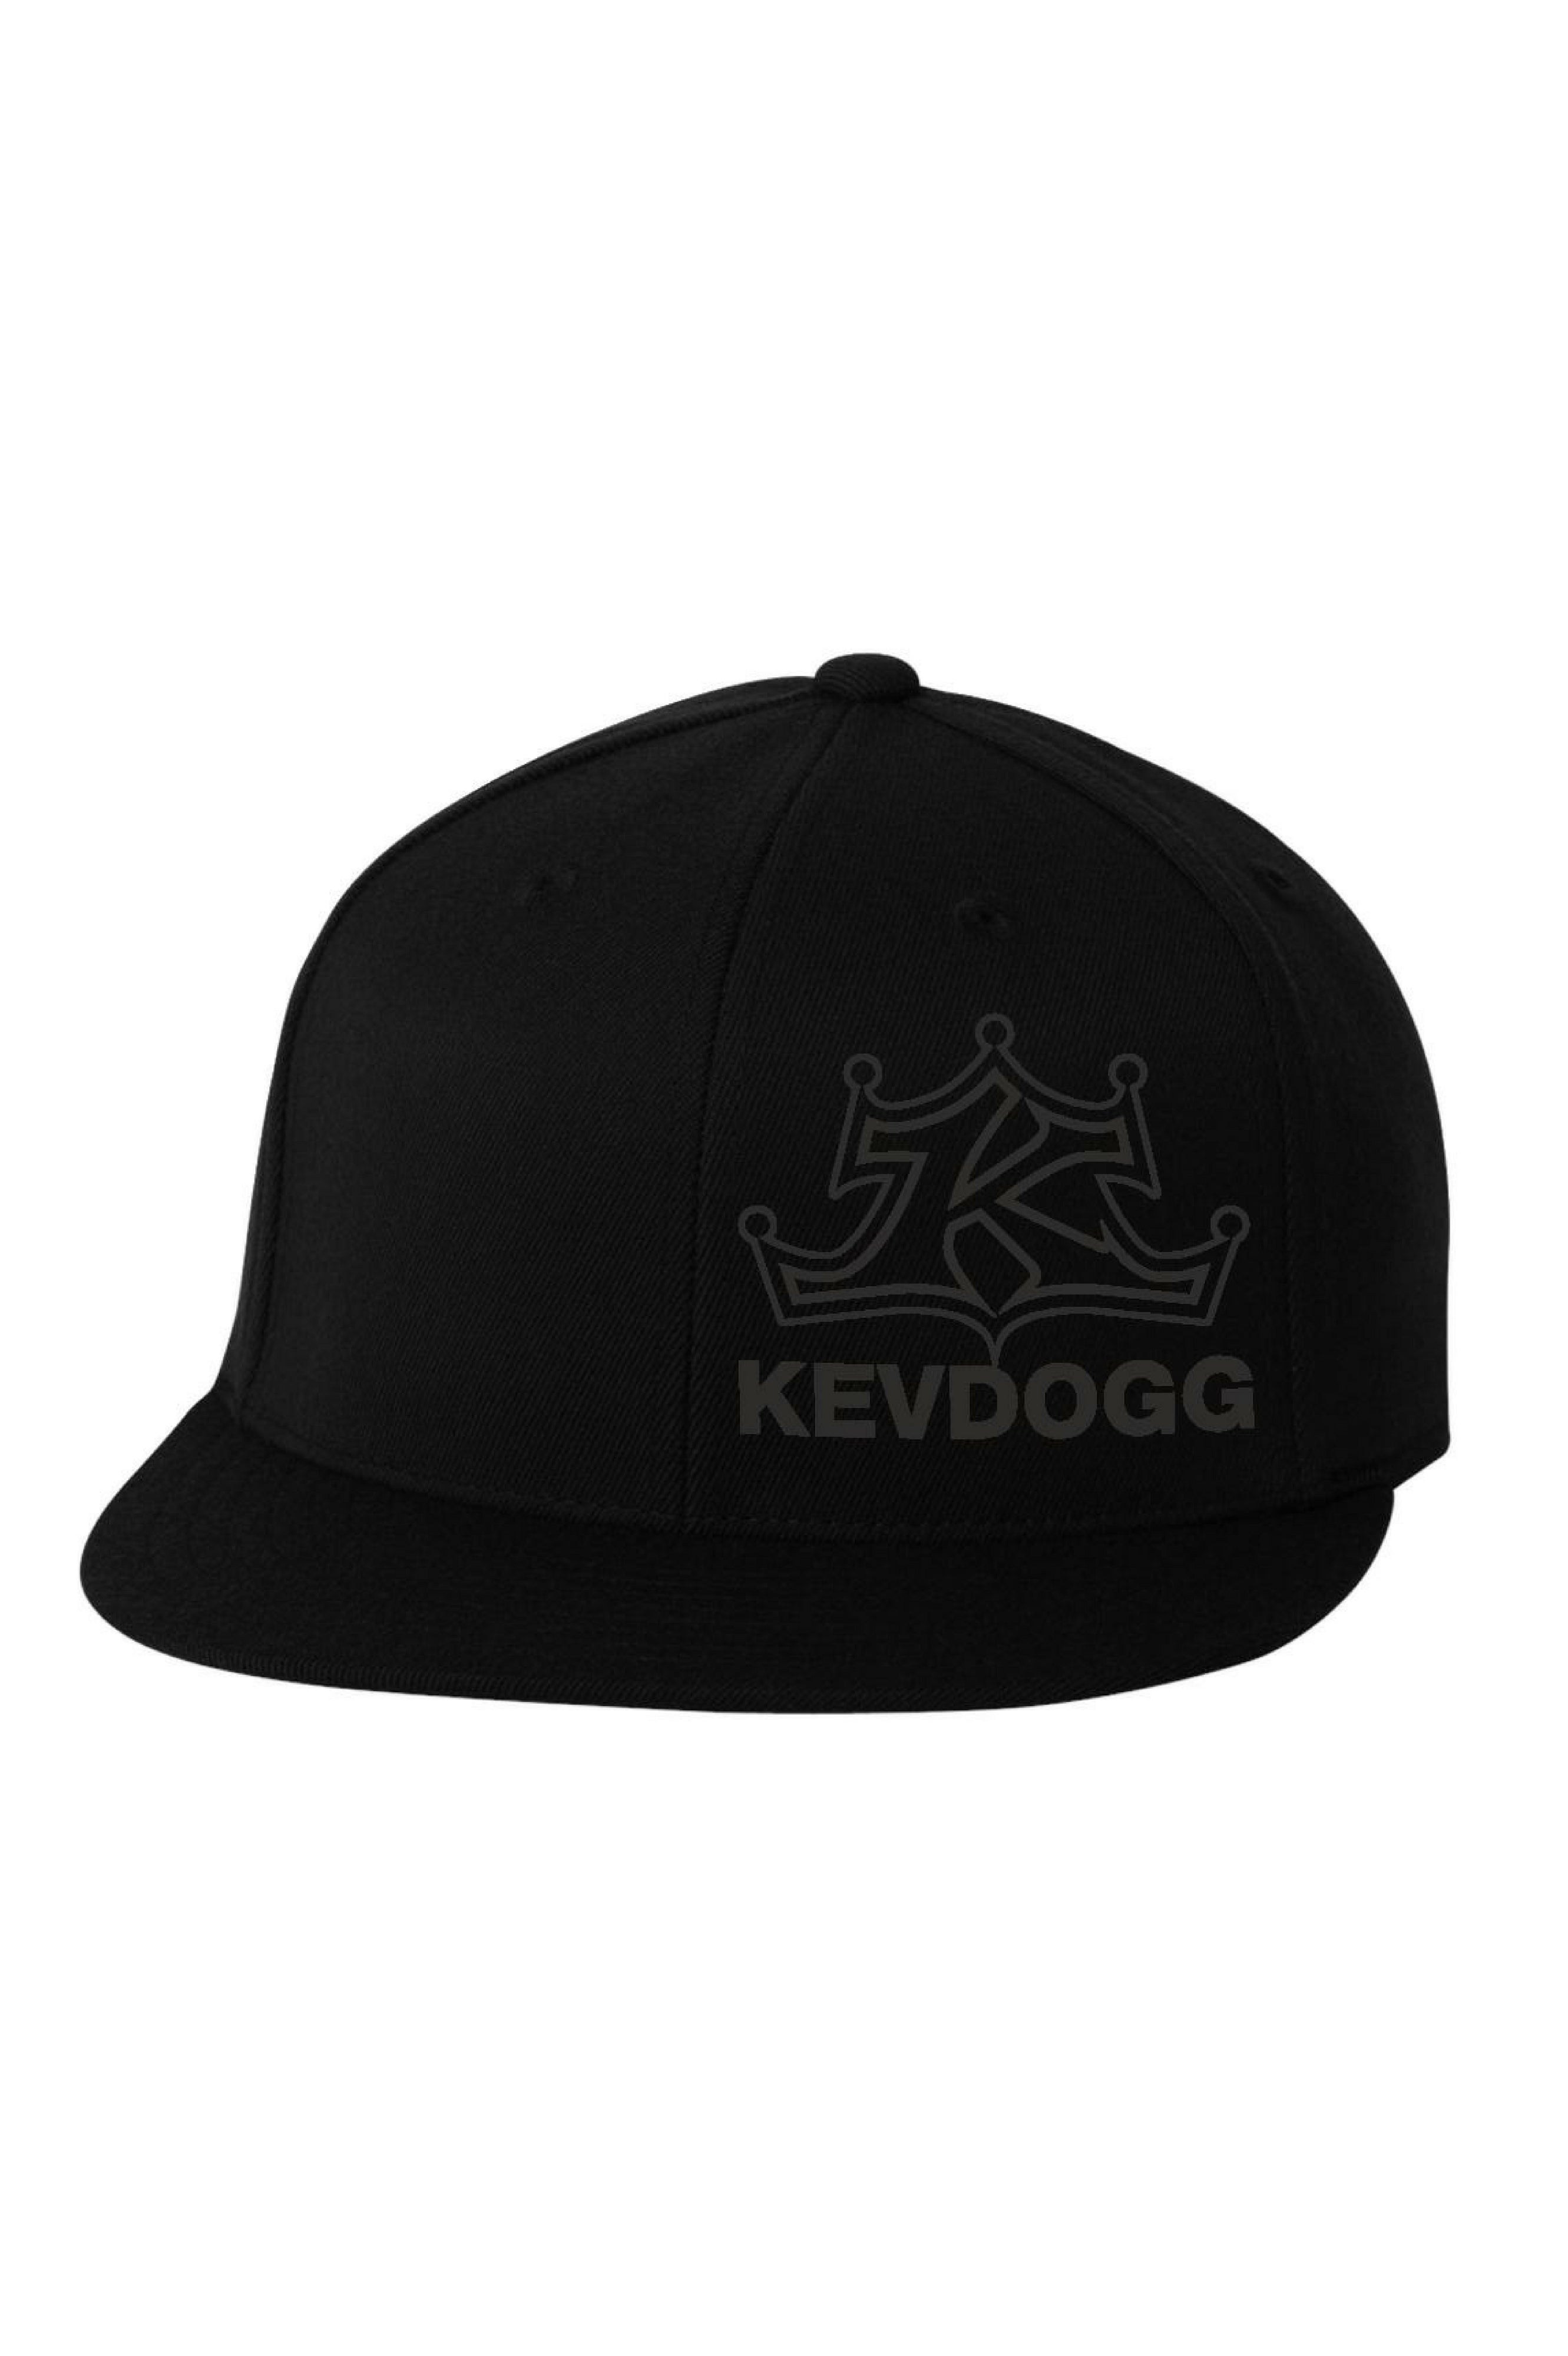 KevDogg Flat Bill Hat